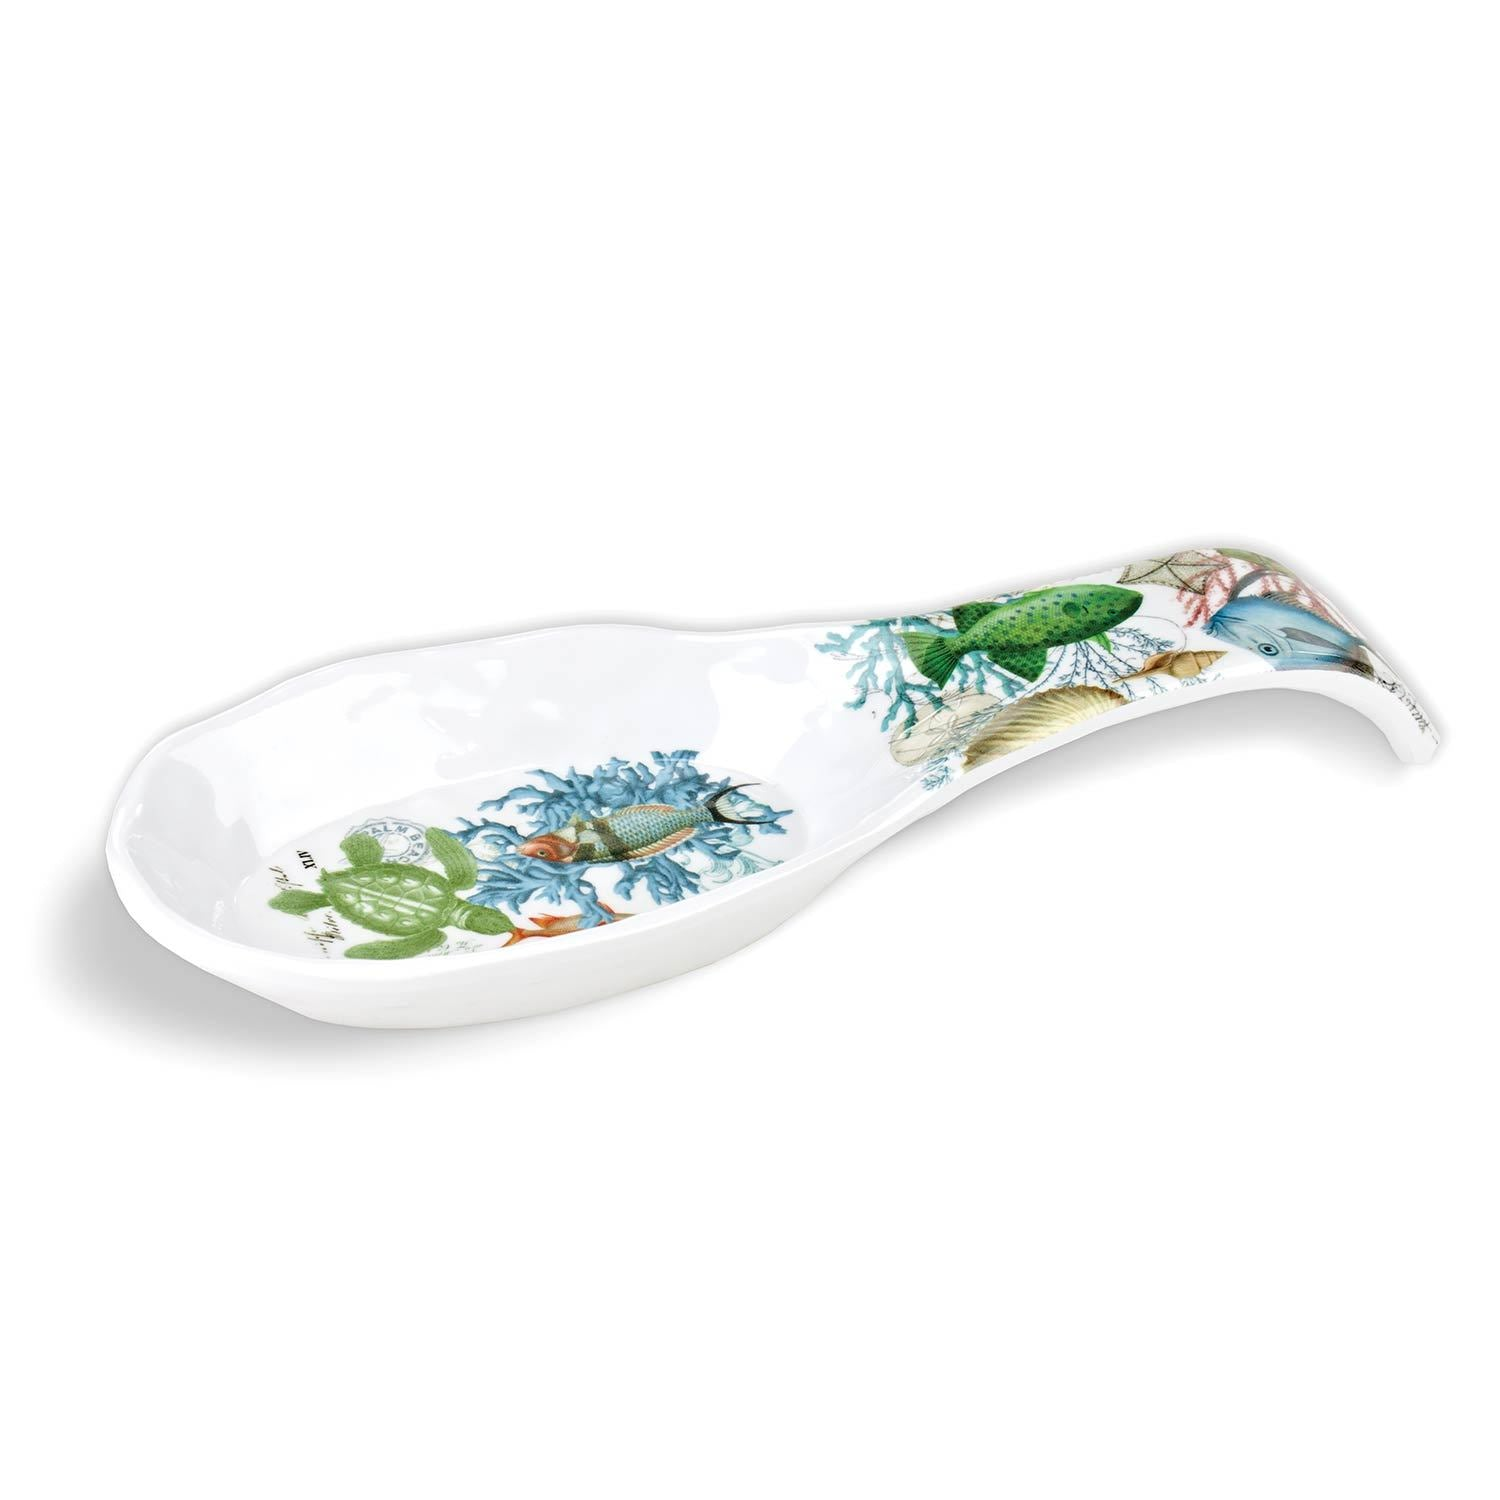 Sea Life Melamine Spoon Rest